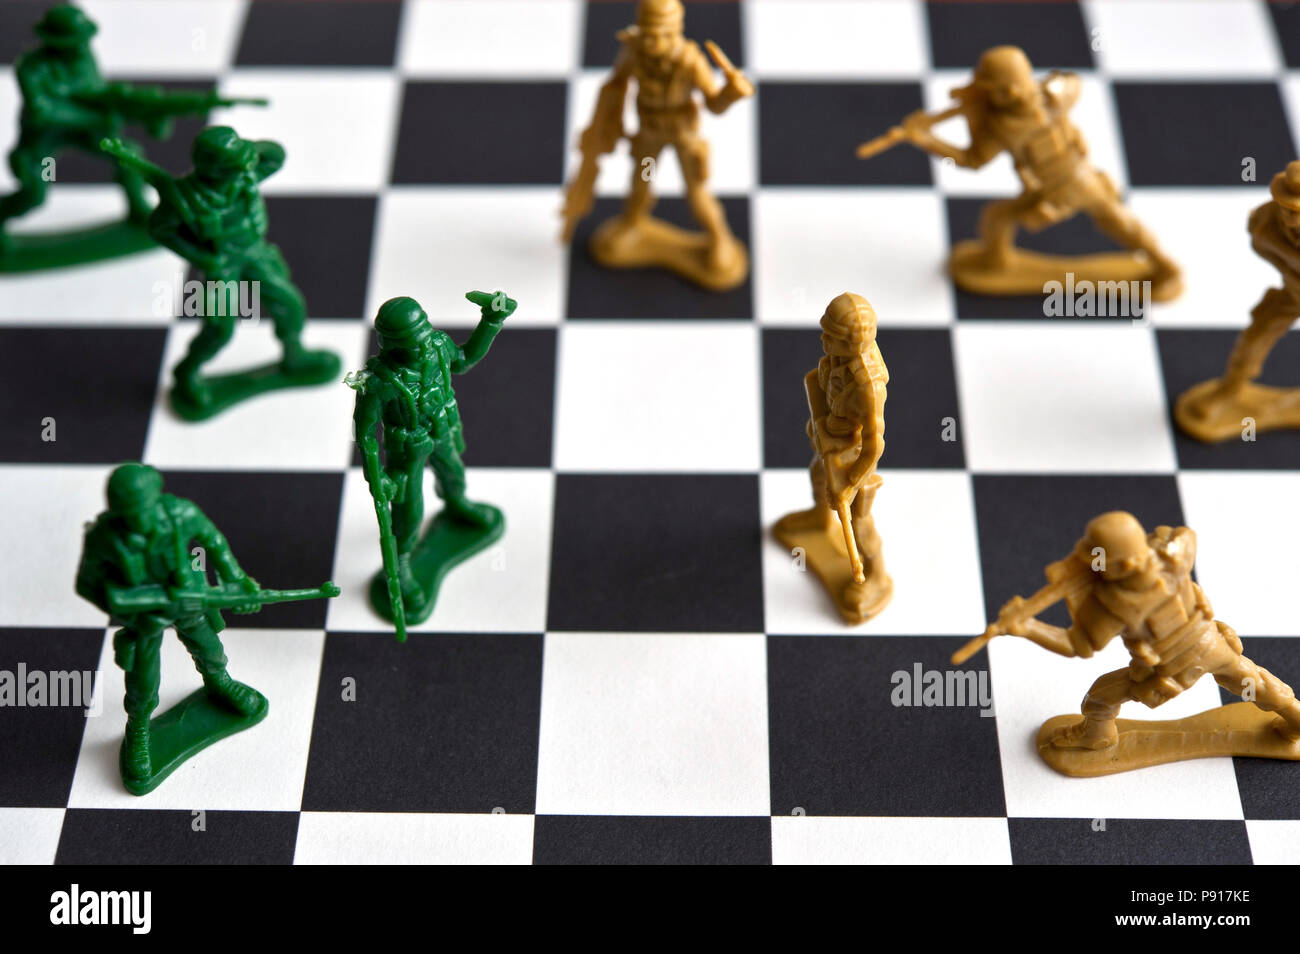 two armies of plastic toy soldiers facing each other on a checkerboard - Stock Image